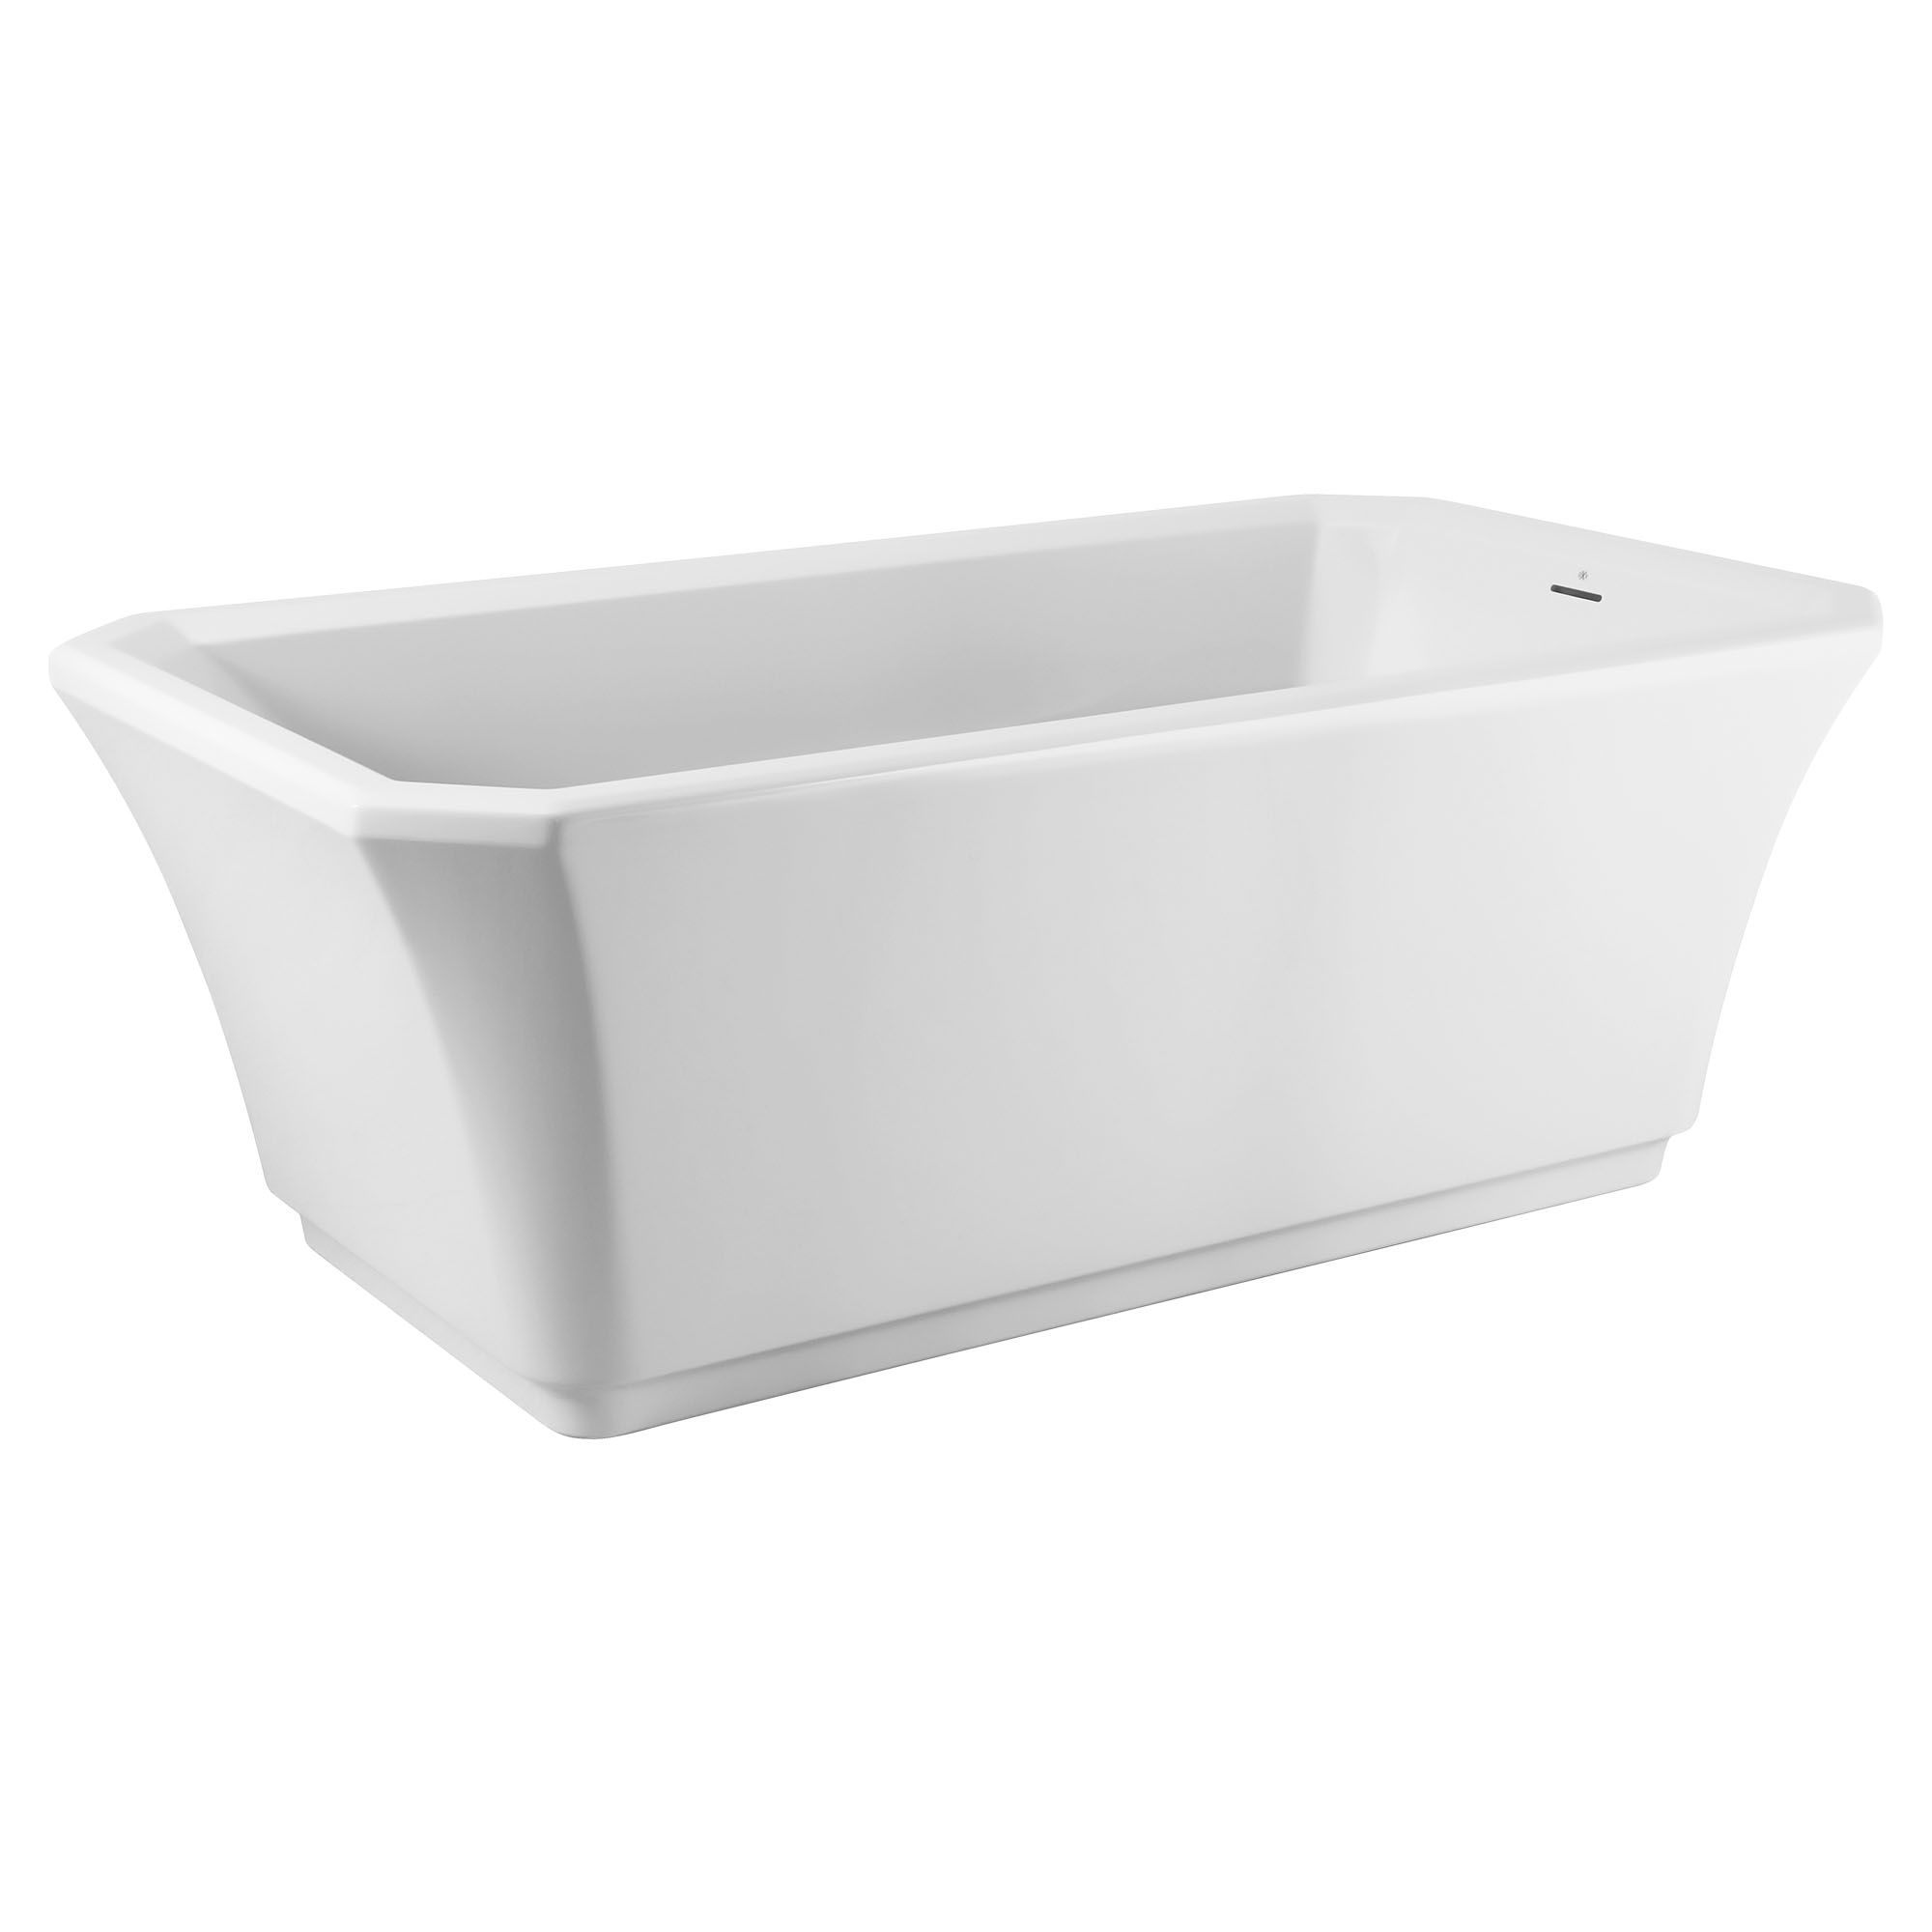 Belshire Freestanding Soaking Tub